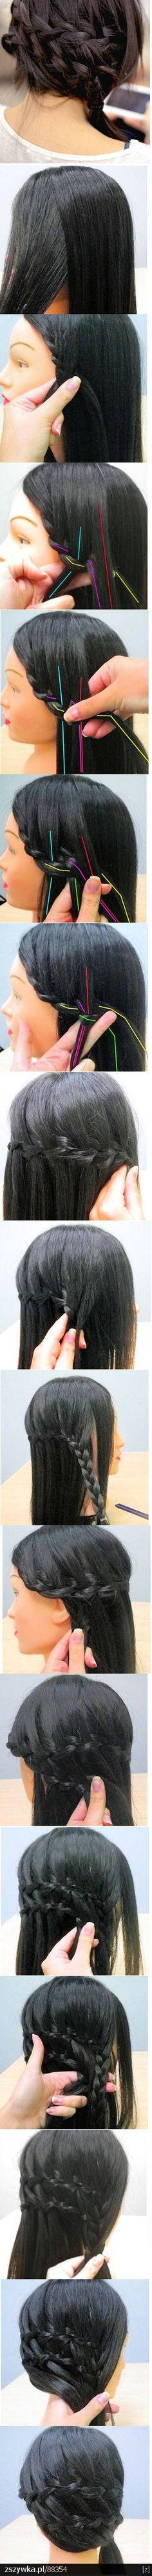 Double water fall braid